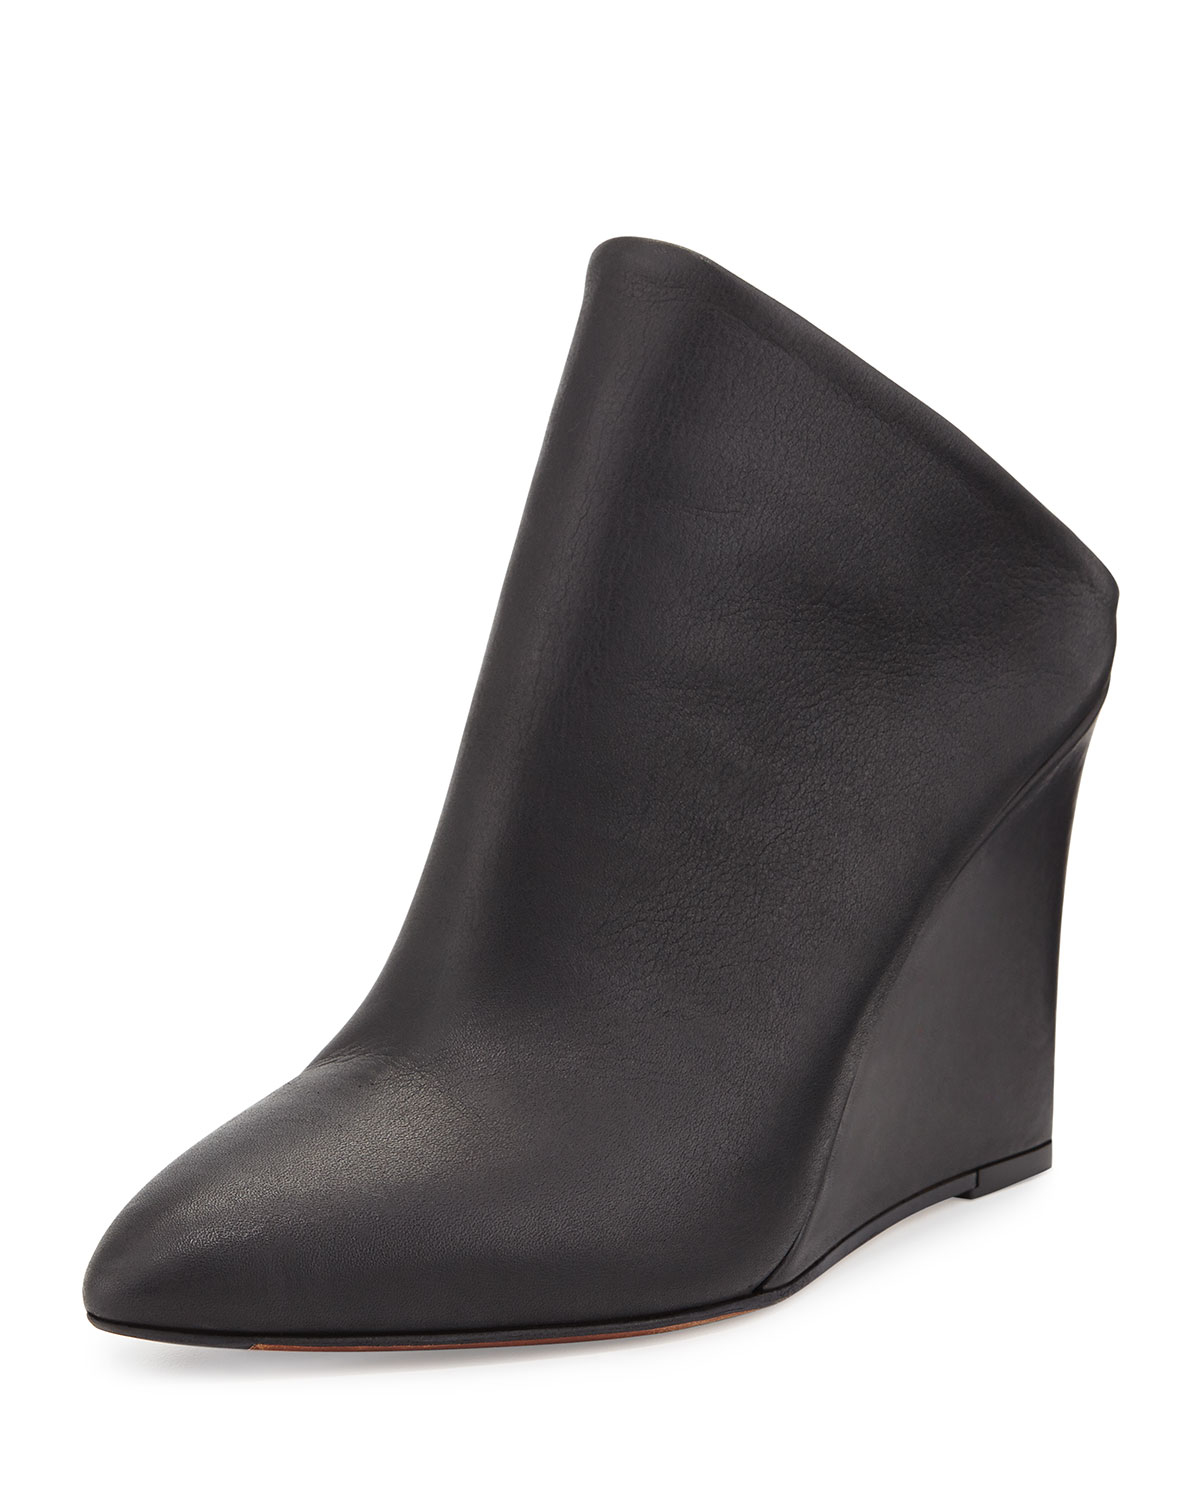 Vince Vail Leather Wedge Mule In Black Lyst